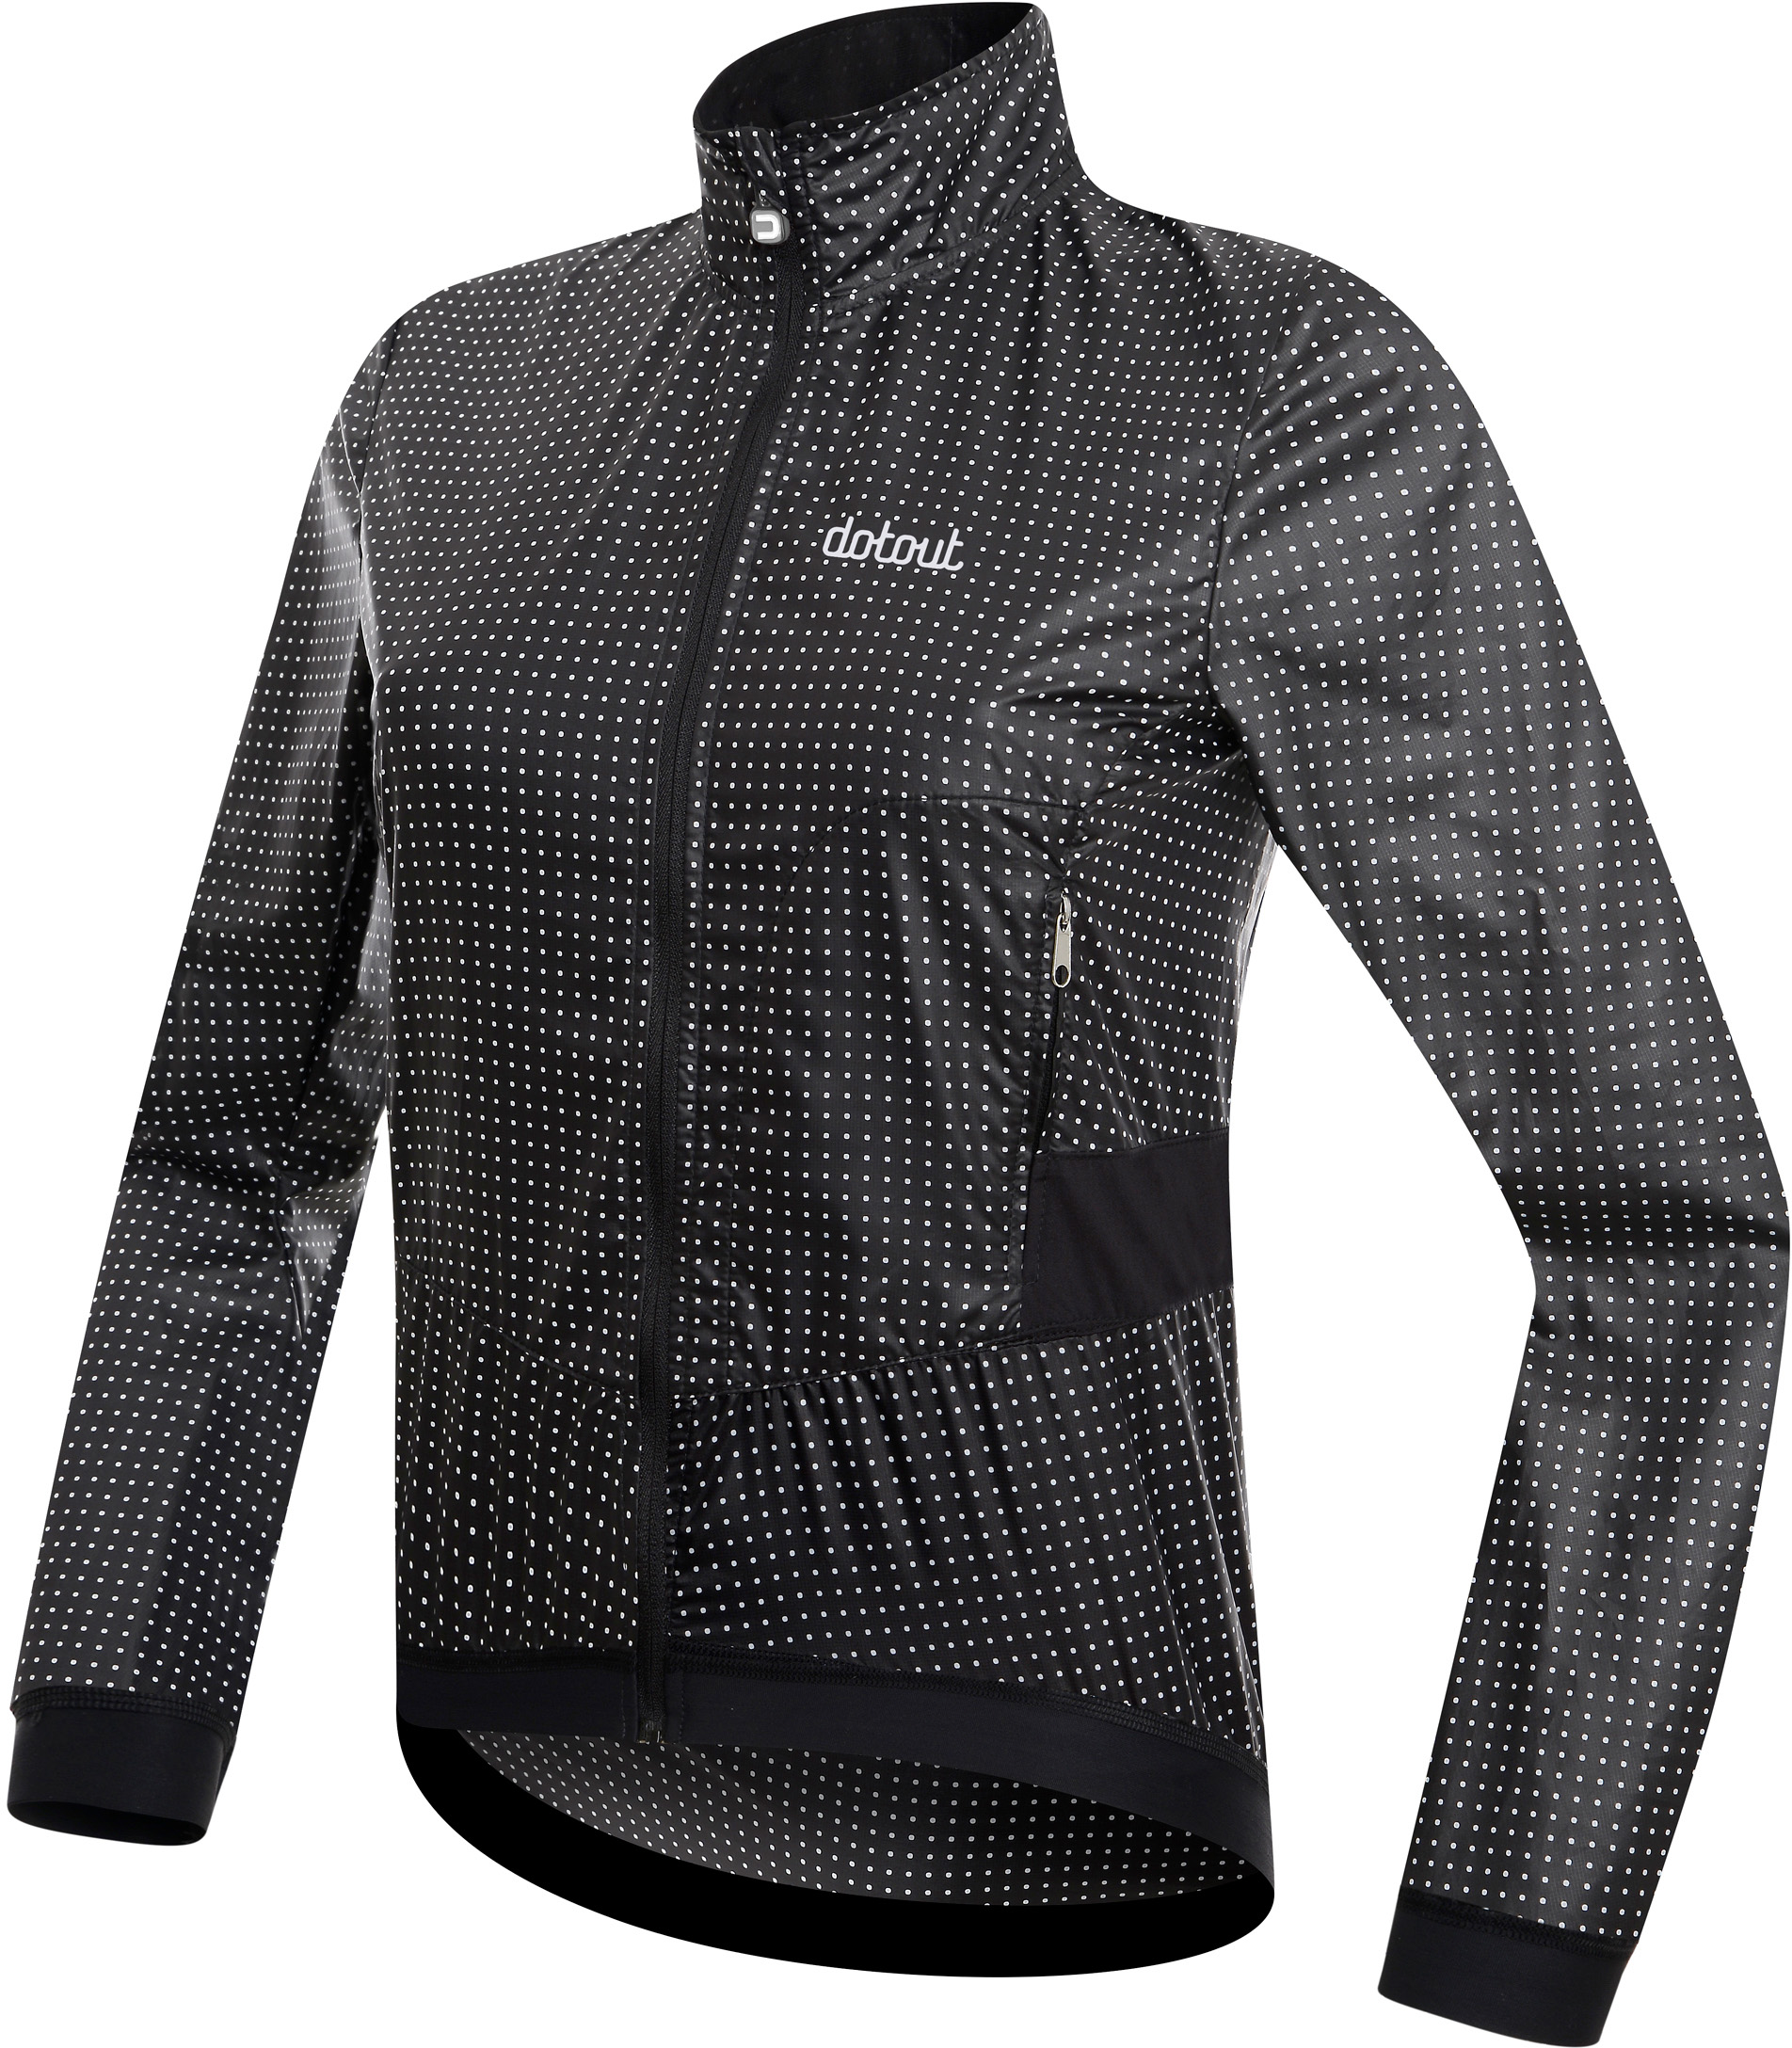 Dotout Women's Tempo Pack Jacket | Jackets